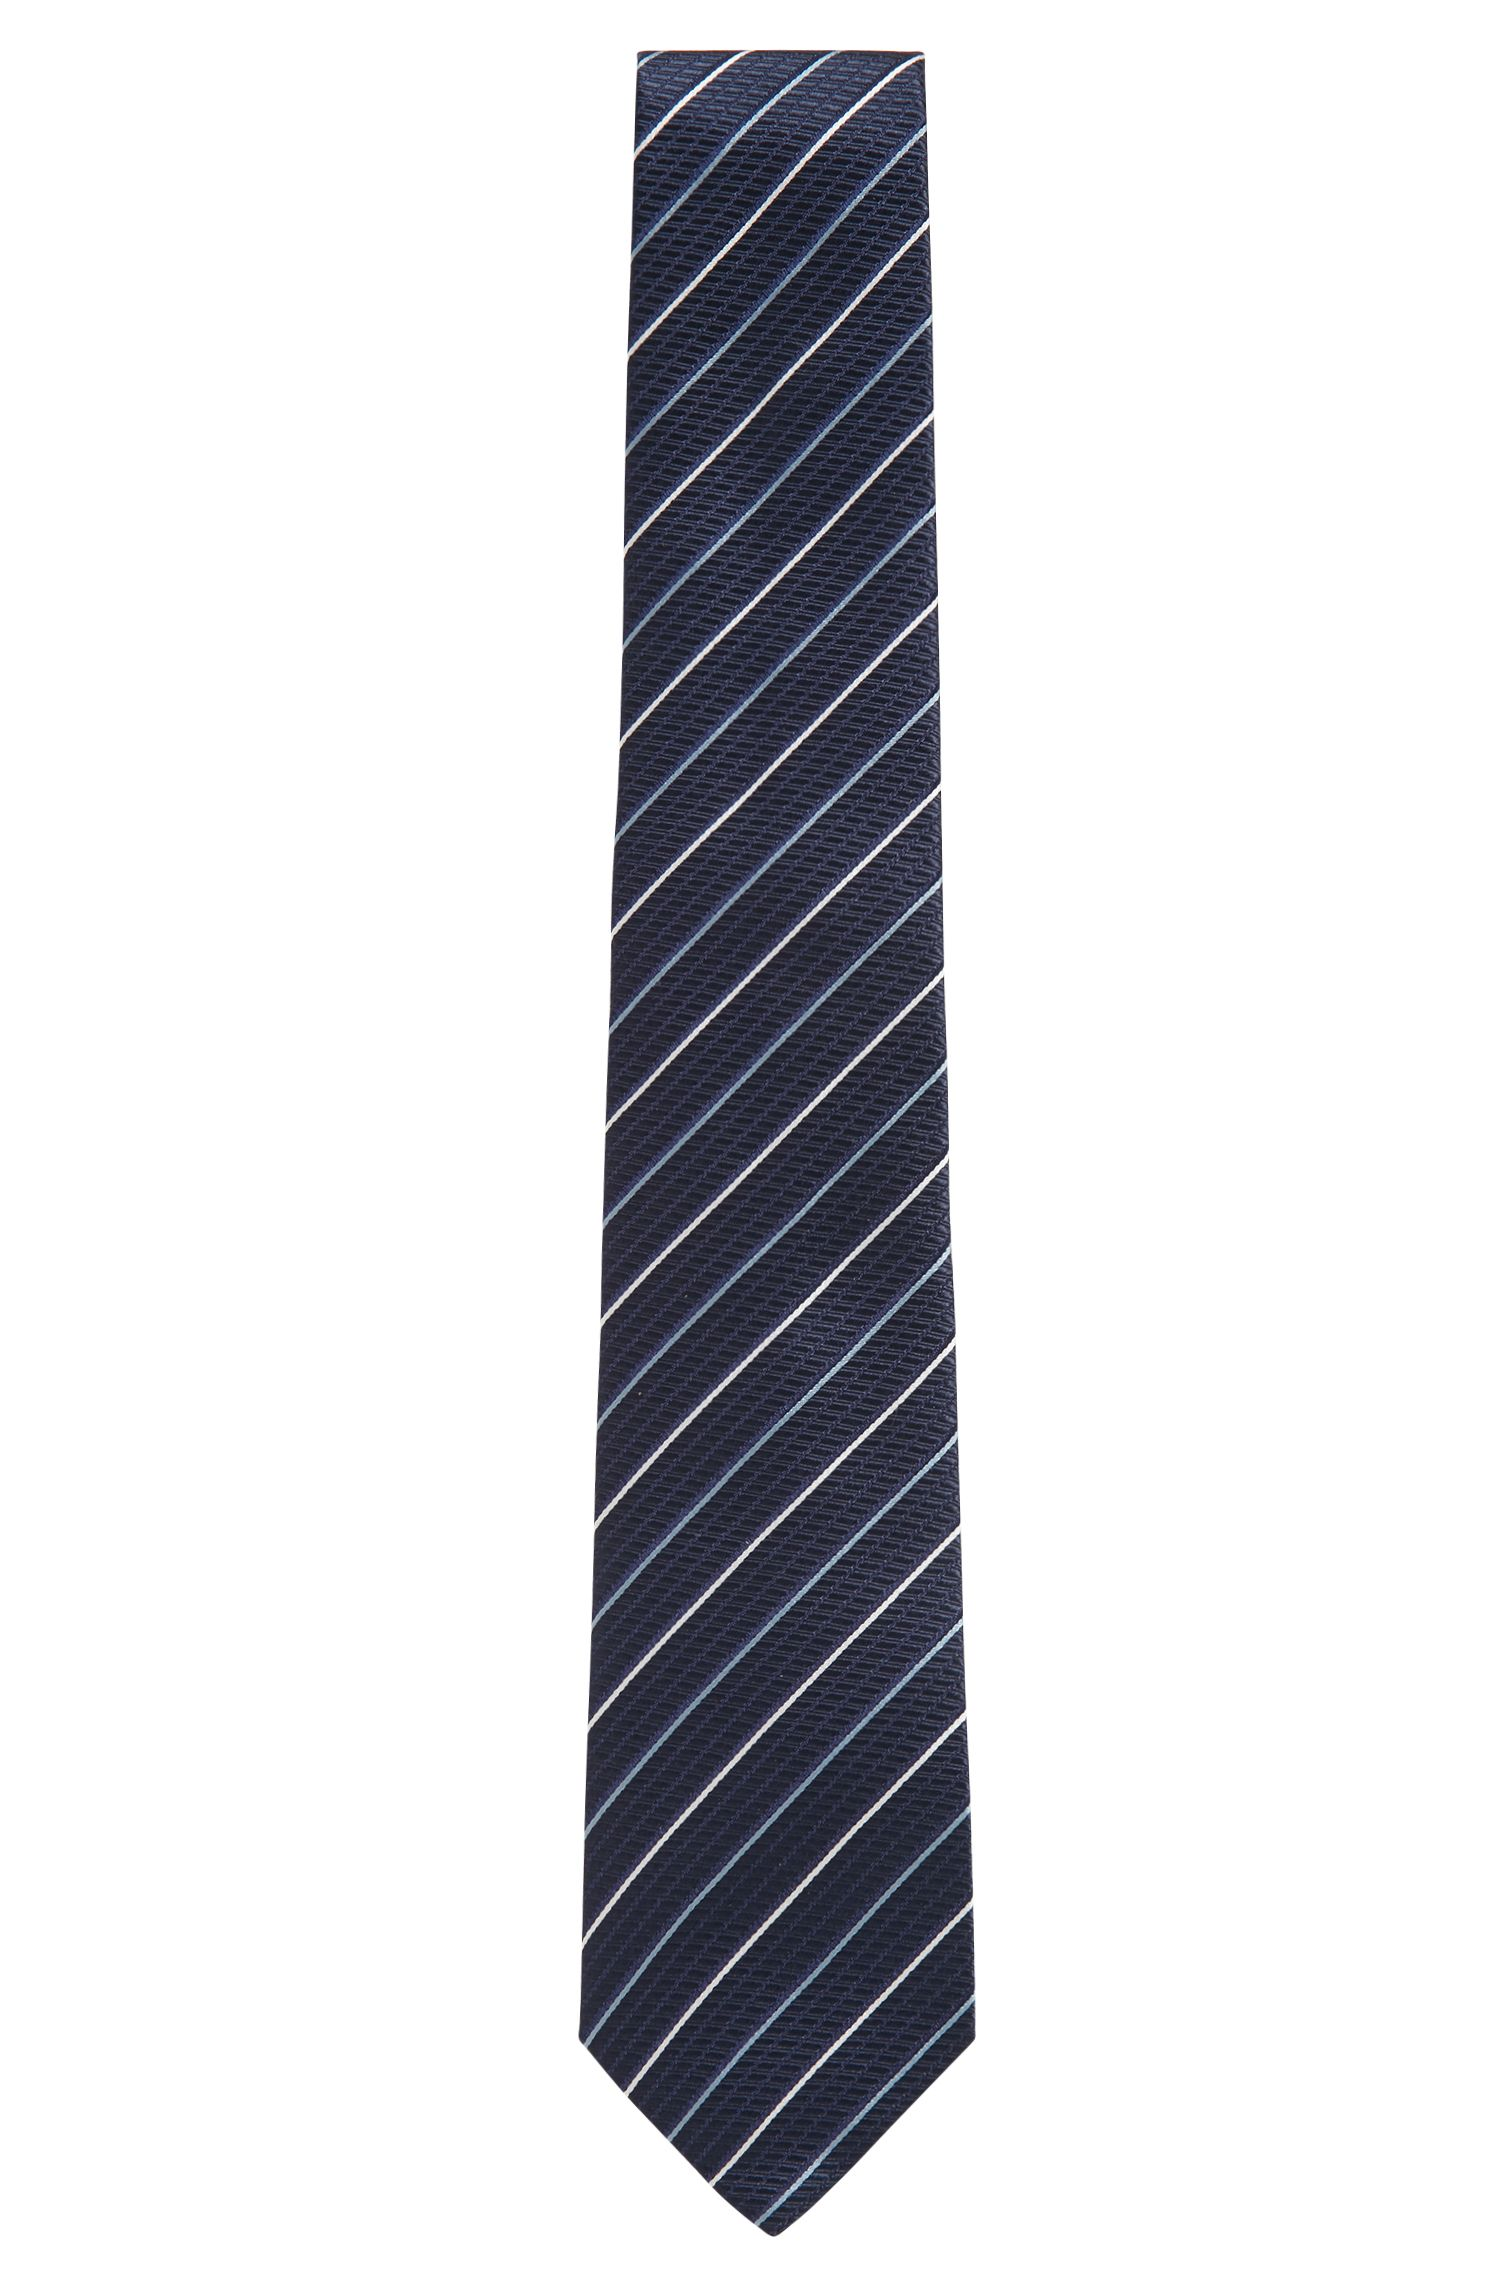 Italian-made silk tie with diagonal stripes, Patterned